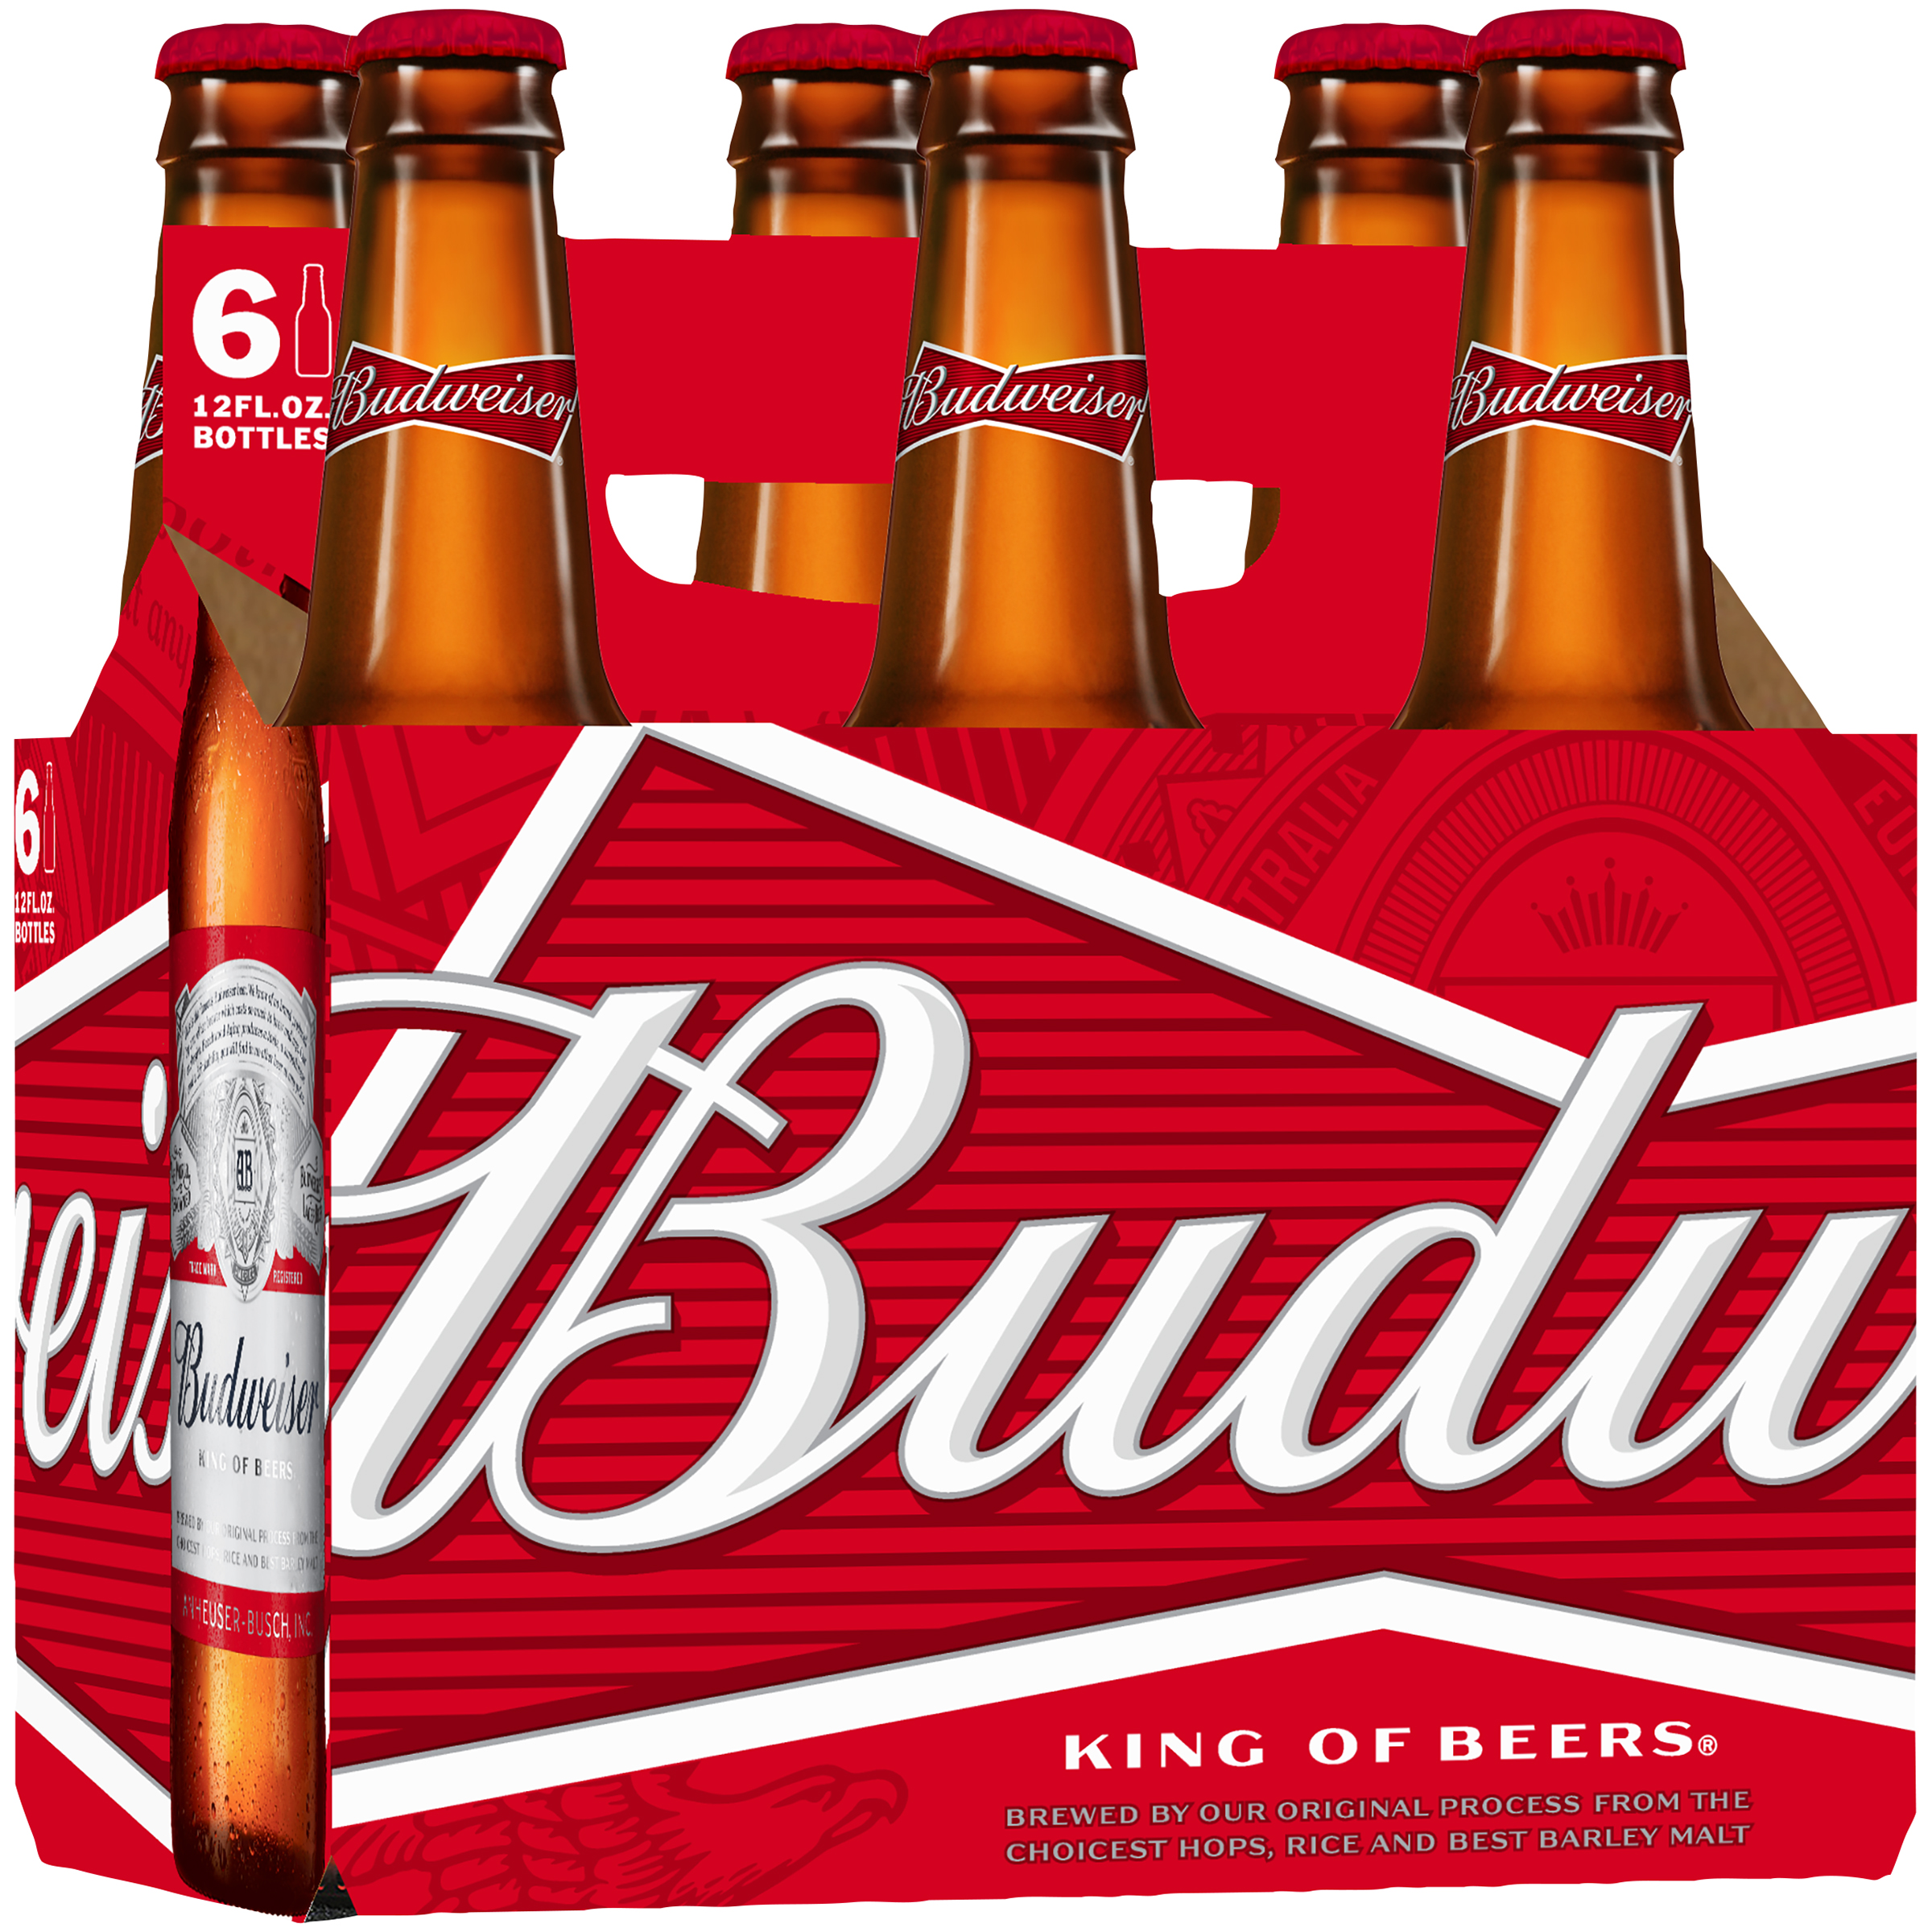 Budweiser Beer, 6 pk 12 fl. oz. Bottles